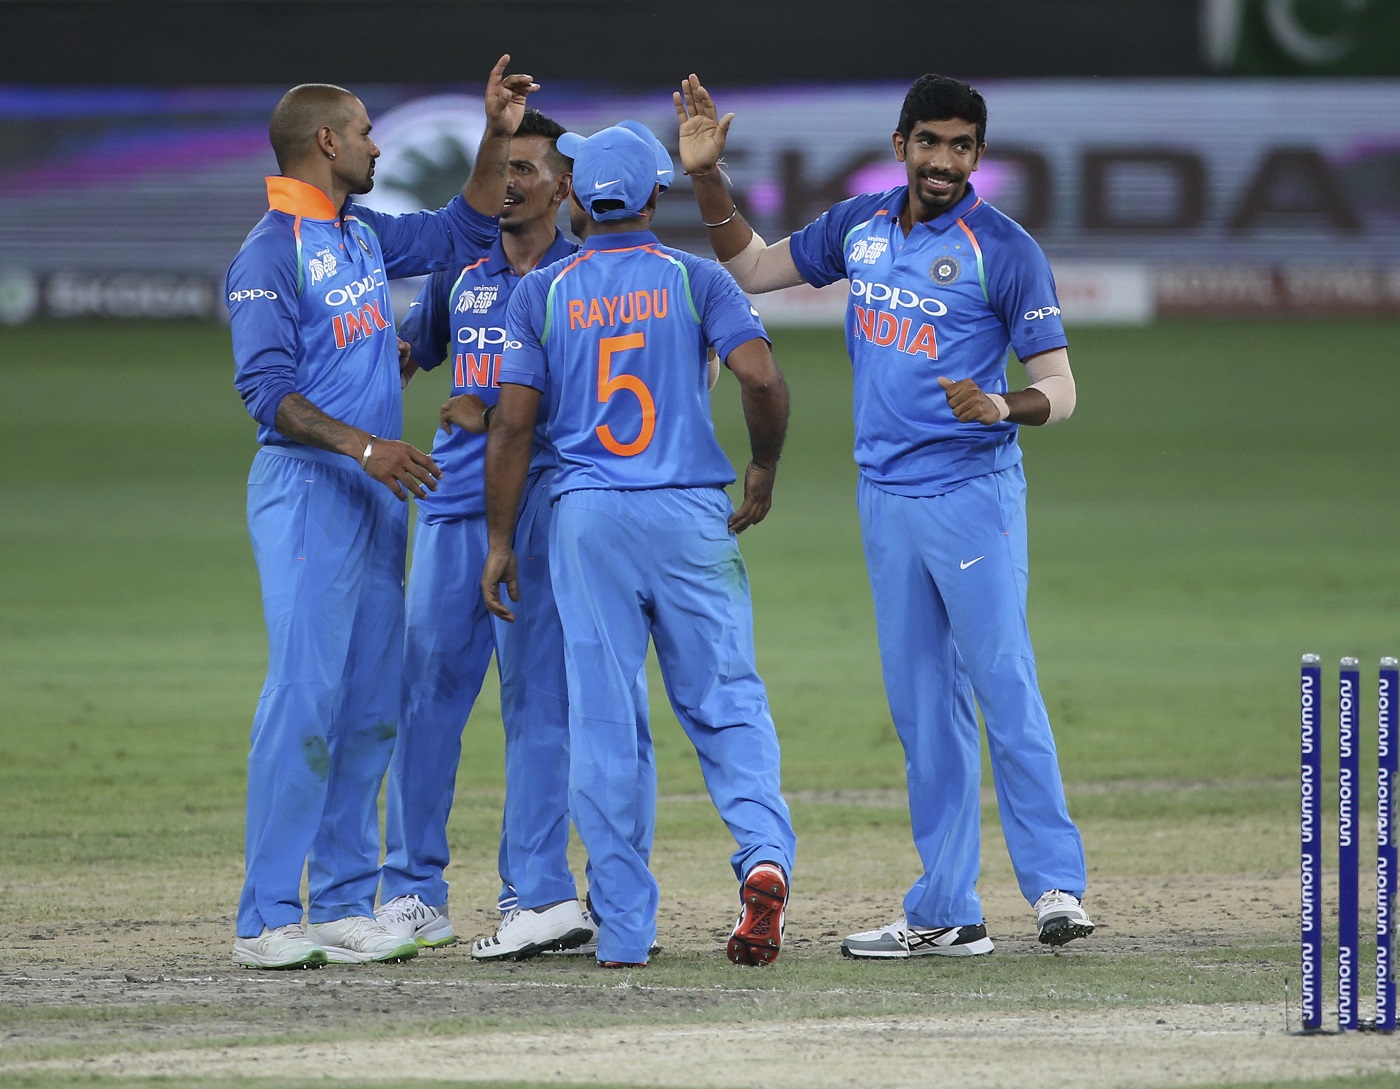 India smash Pakistan by eight wickets with superb all-round display